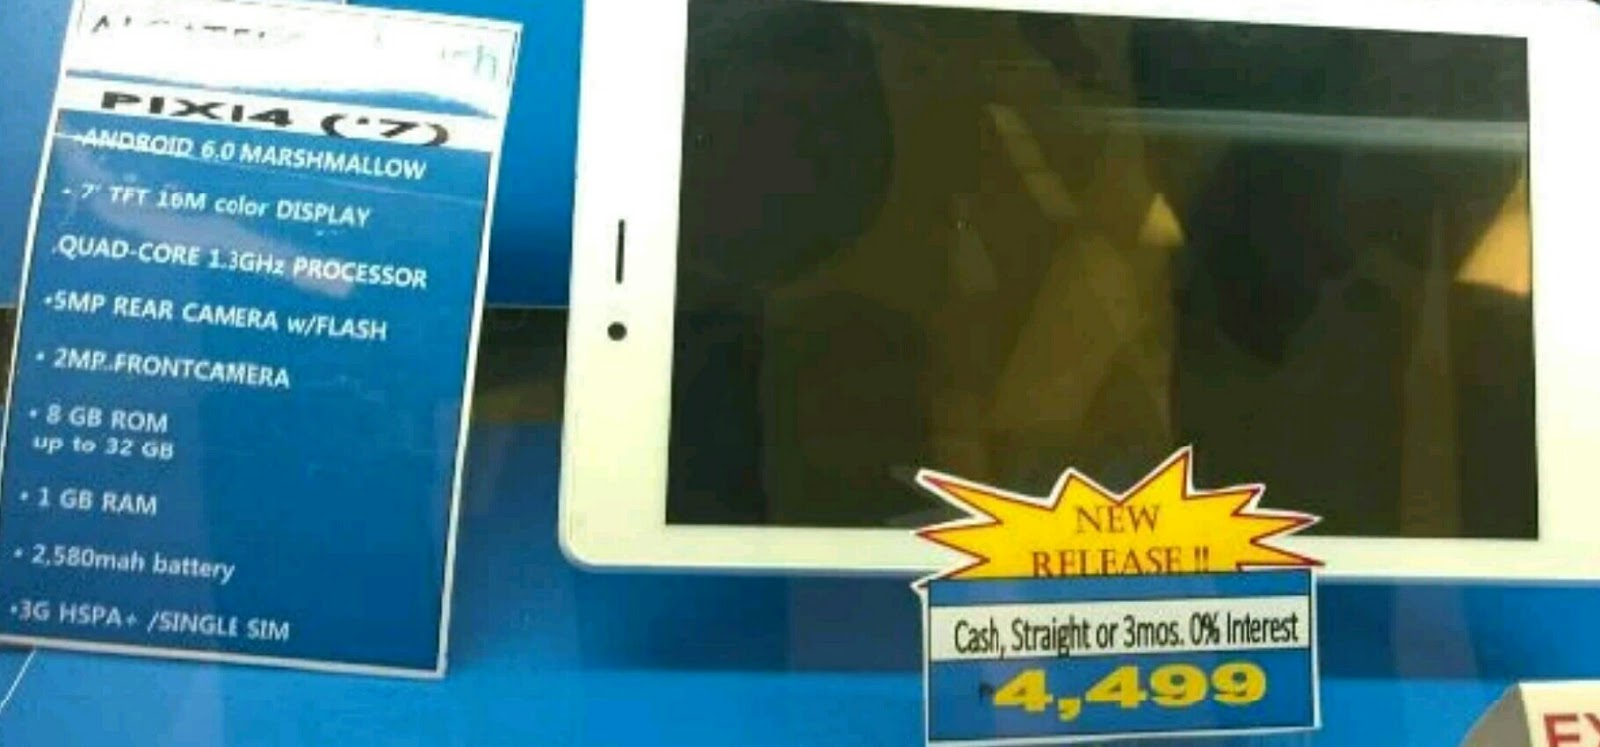 Alcatel Pixi 4 7 3G tablet spotted in the wild